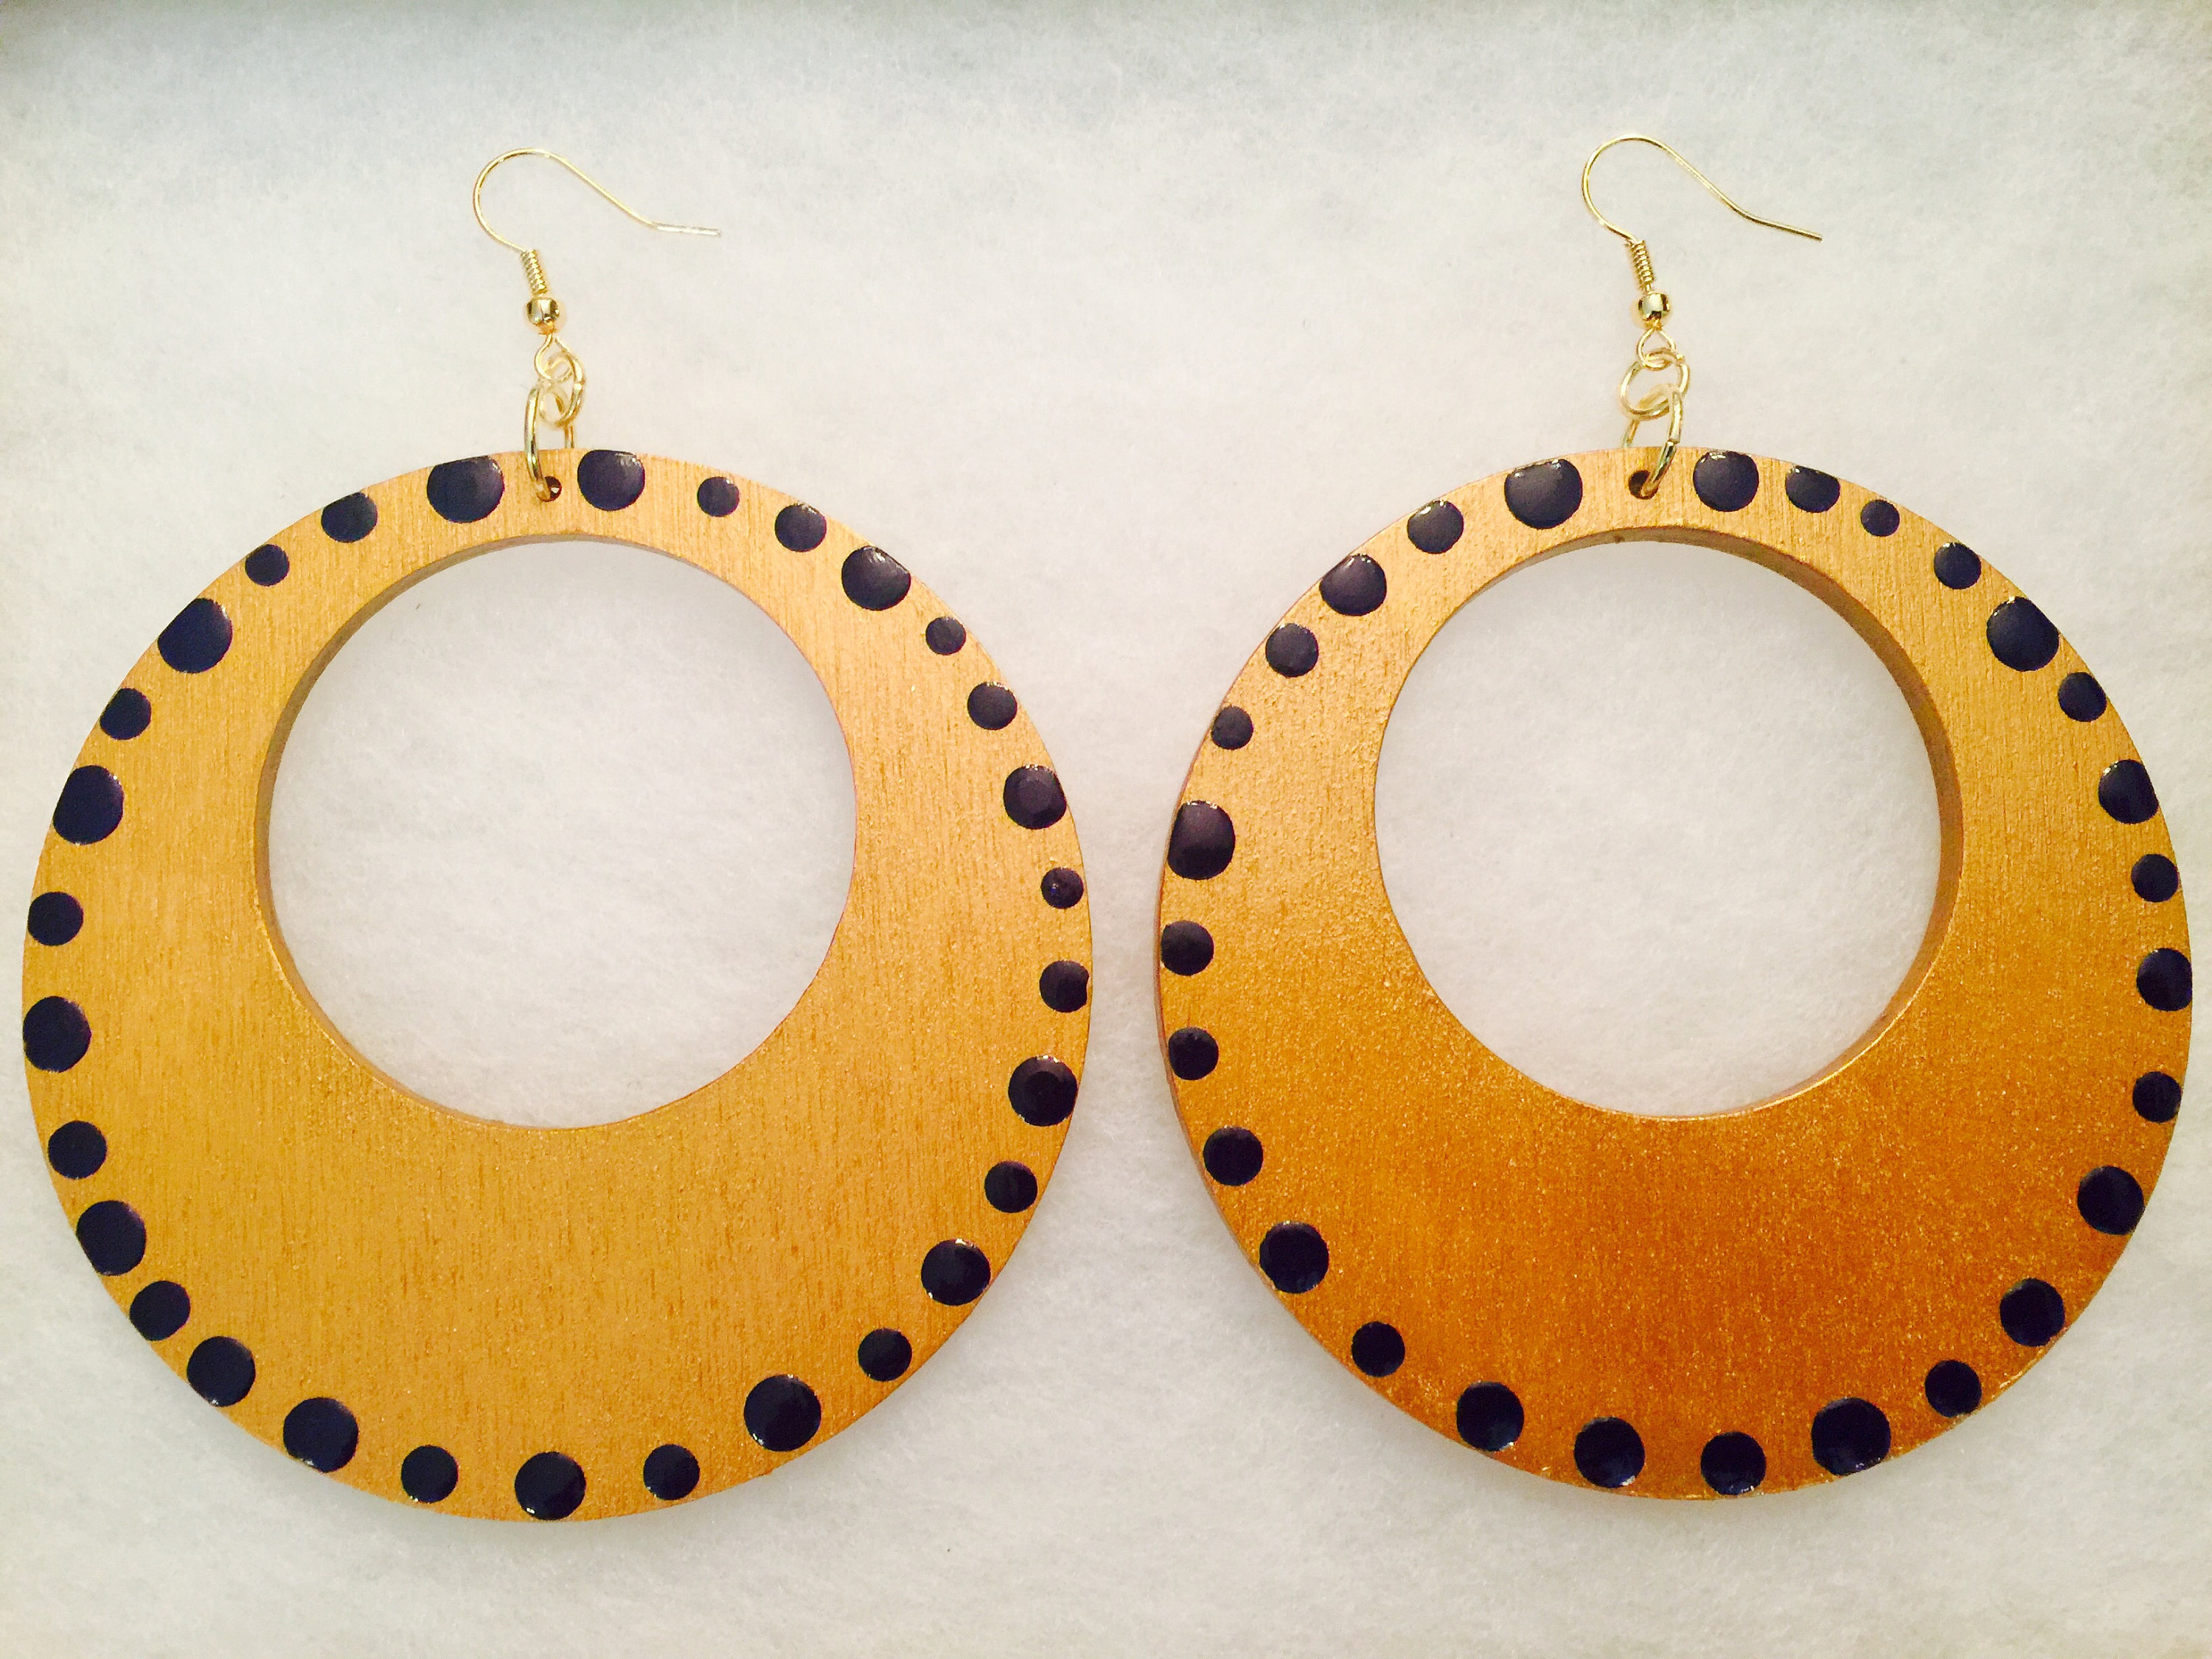 natives handstamped jewellery contemporary painted product hand stamped earrings enamel paint